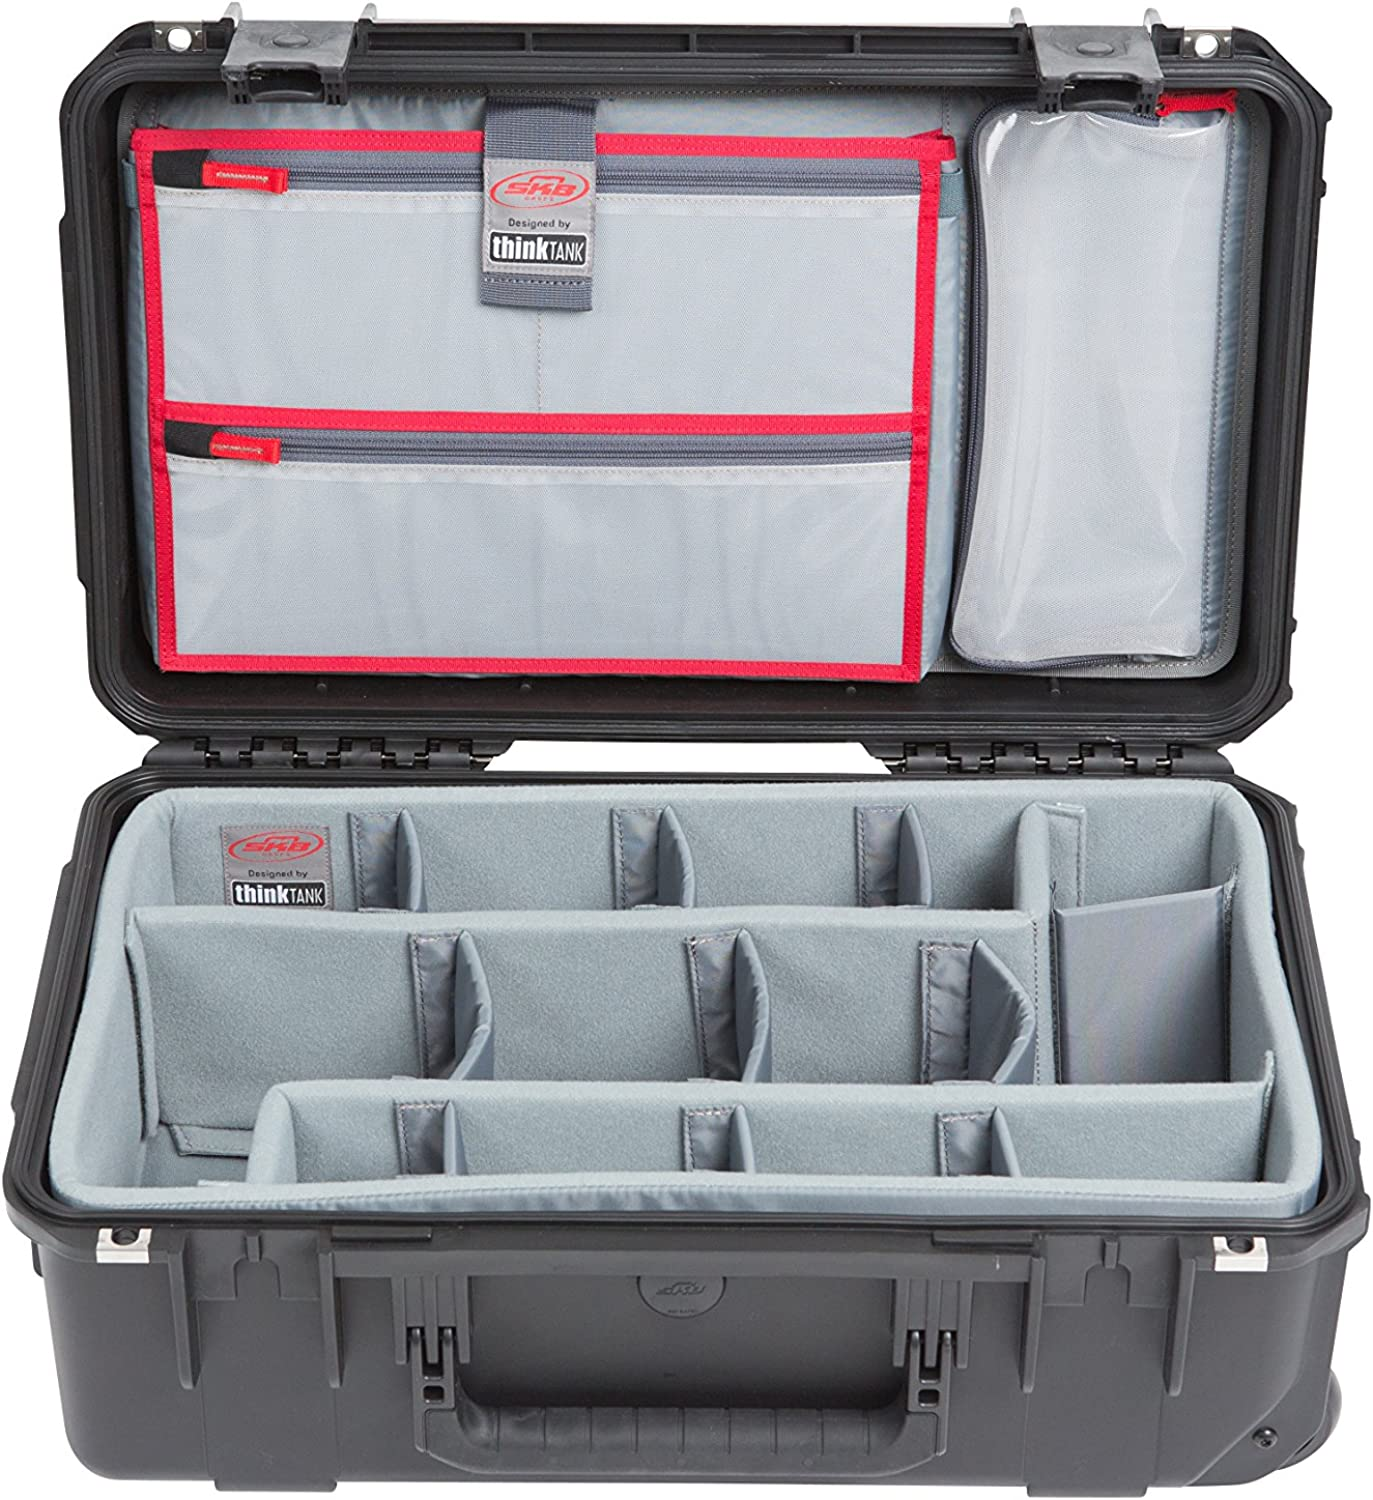 SKB 3i-2011-7DL iSeries Case with Think Tank Photo Dividers, Black